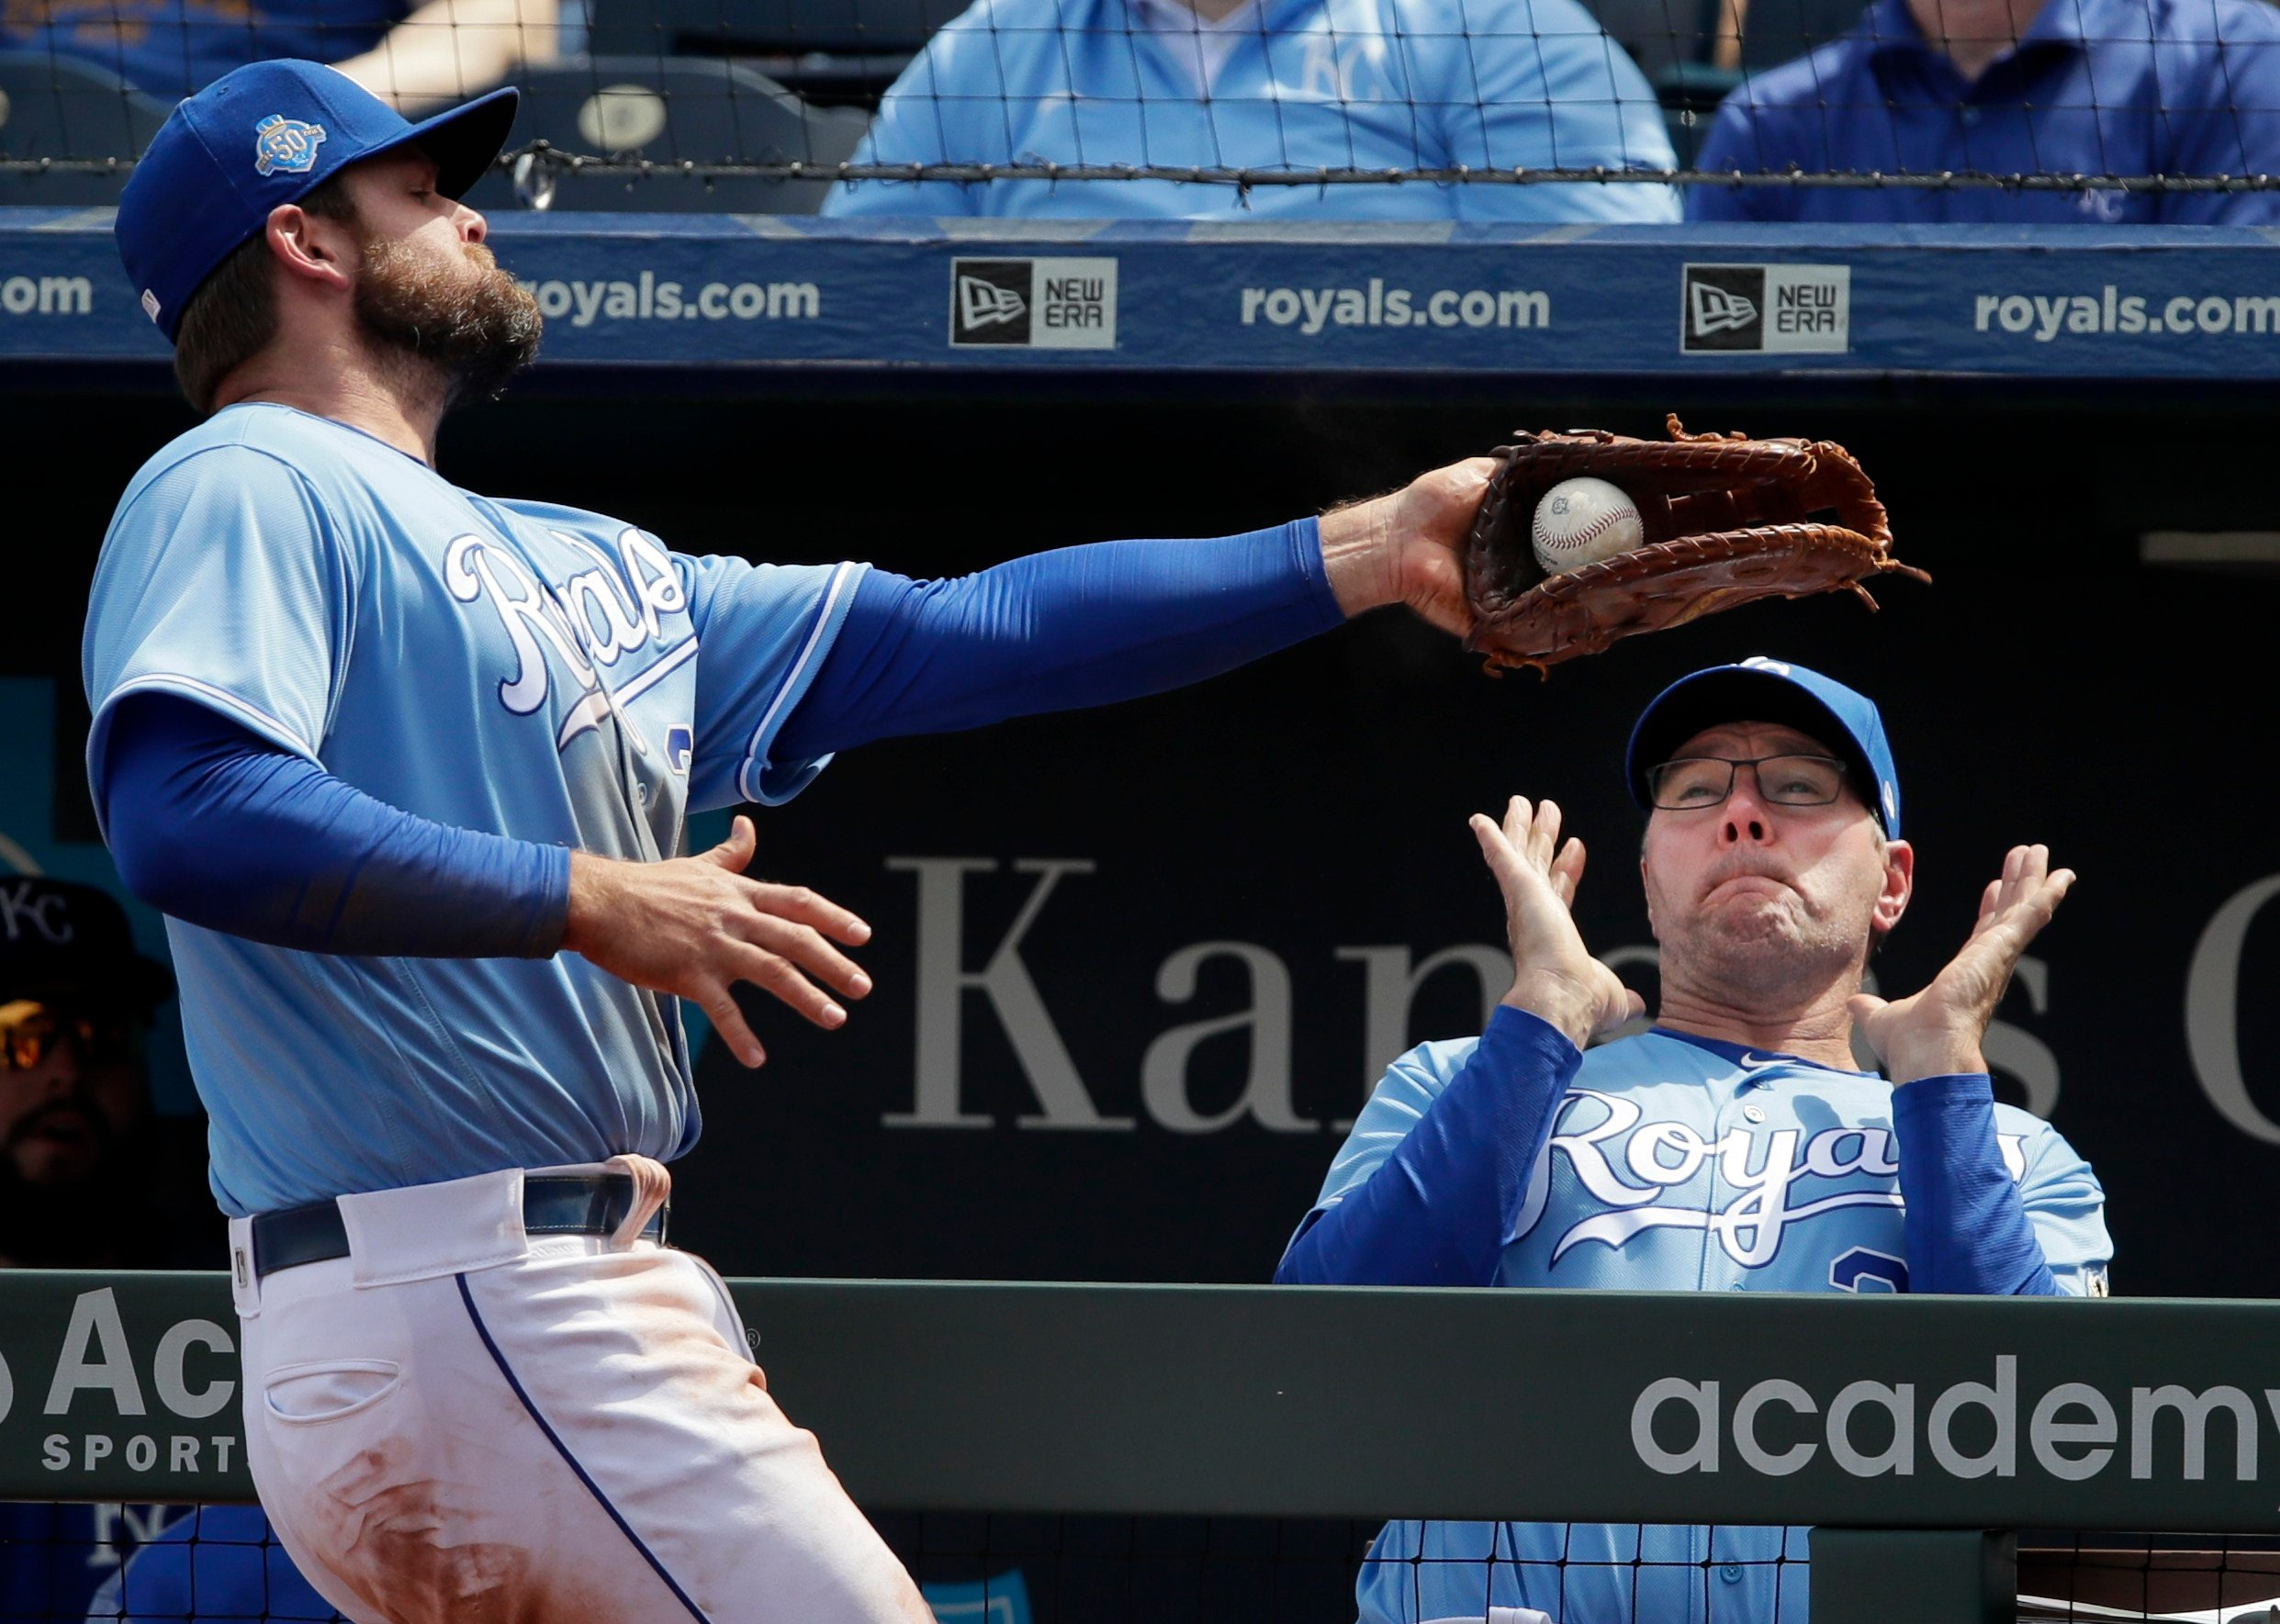 Royals first baseman Lucas Duda, left, catches a foul ball near the dugout hit by Seattle Mariners' Guillermo Heredia during the fourth inning in Kansas City. Kansas City Kansas City Royals pitching coach Cal Eldred, right, gets out of the way. (AP)